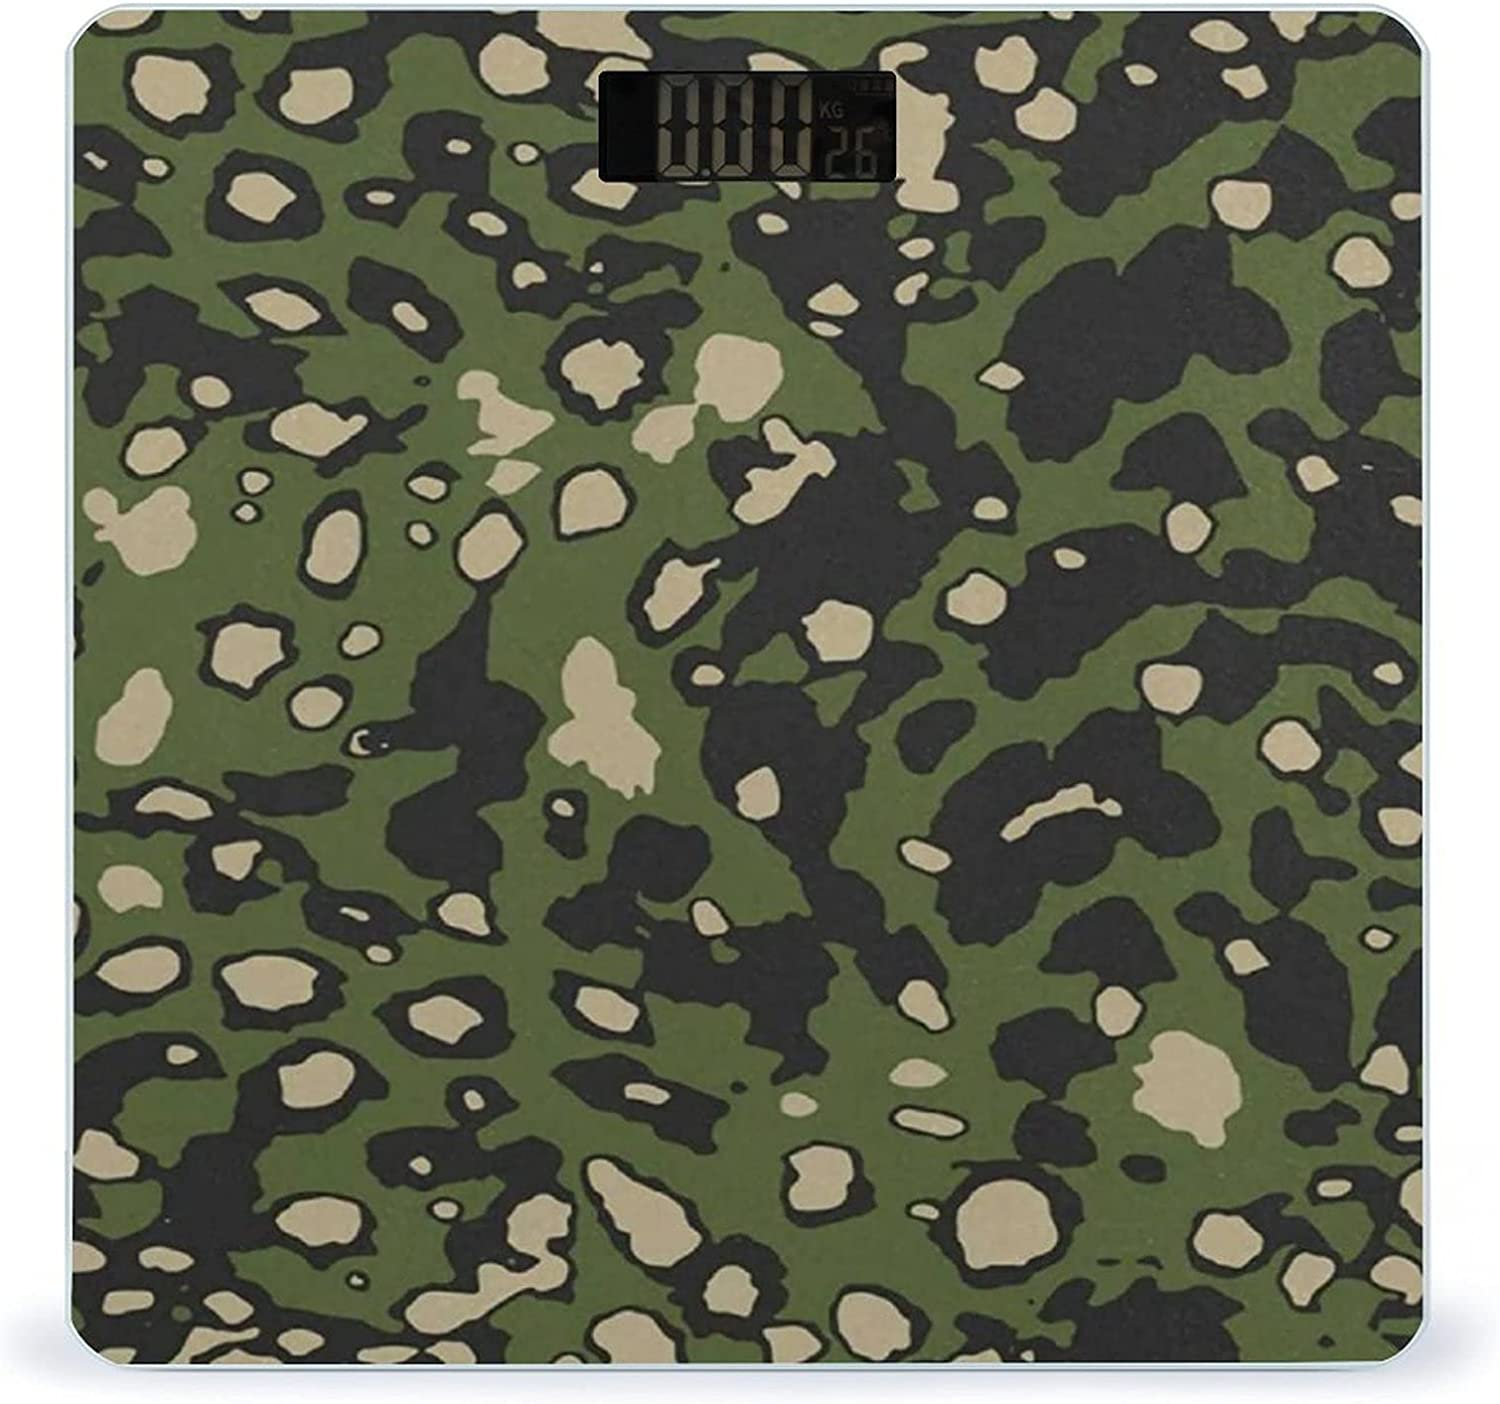 Bathroom Scale Genuine Free Shipping Leopard Spot in for Camouflage Body Scales Genuine Free Shipping Style